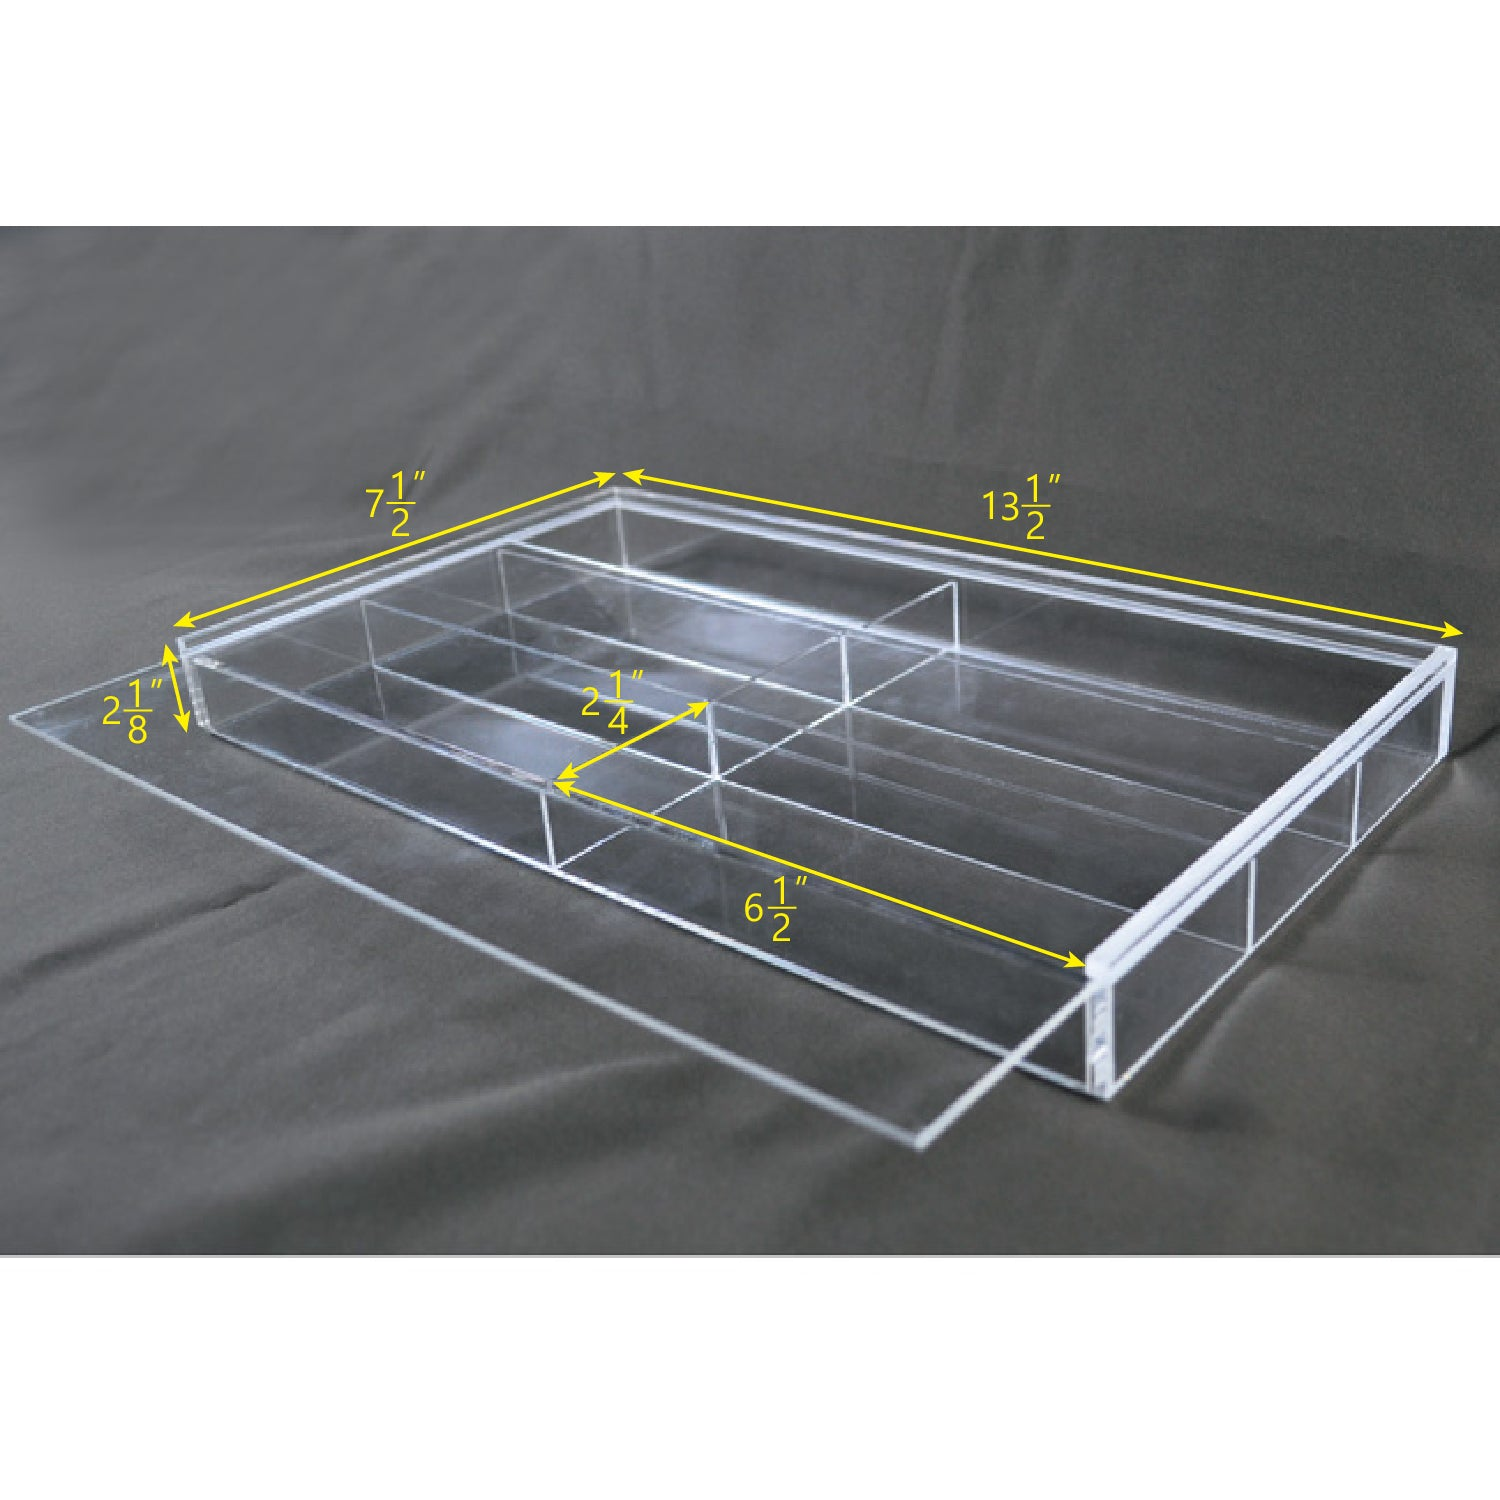 "#TR-6022TAC Acrylic Eyewear Case For Six Frames With Slide Open Lid  13 1/2"" X 7 1/2"" X  2 1/8""H"